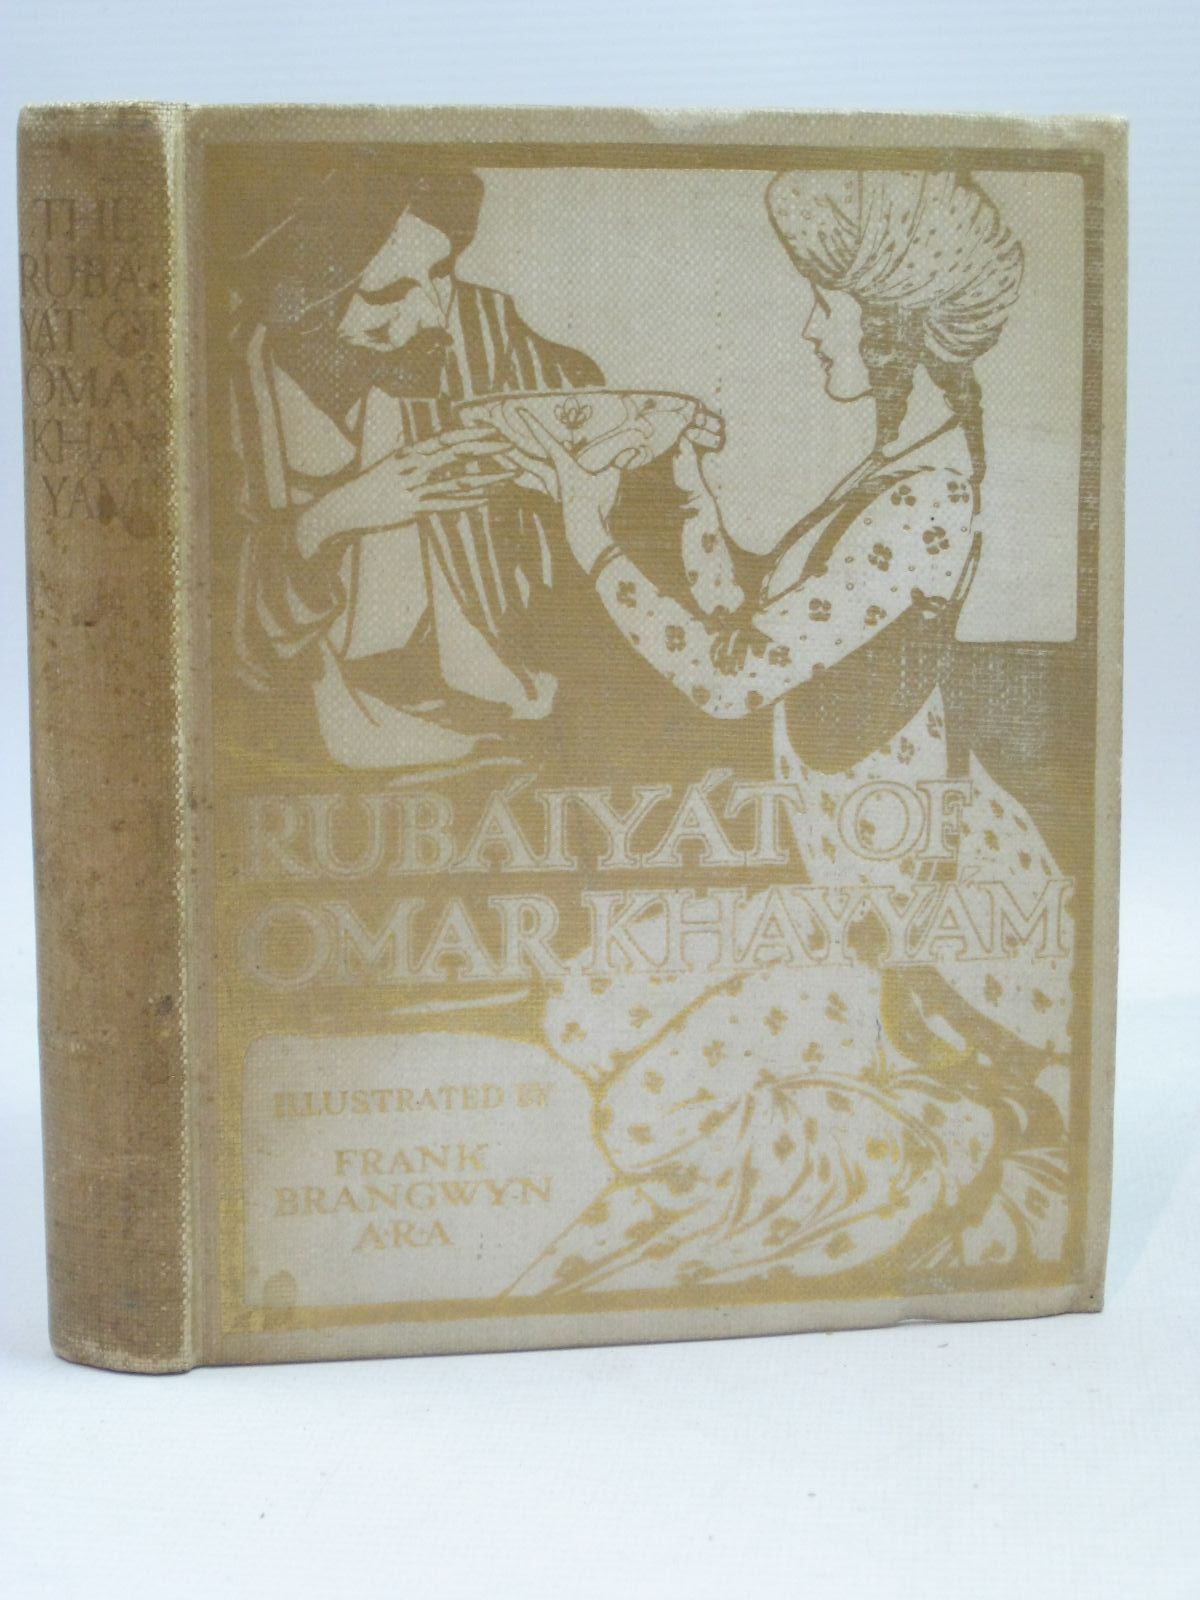 Photo of THE RUBAIYAT OF OMAR KHAYYAM written by Khayyam, Omar Fitzgerald, Edward illustrated by Brangwyn, Frank published by T. N. Foulis (STOCK CODE: 1506170)  for sale by Stella & Rose's Books